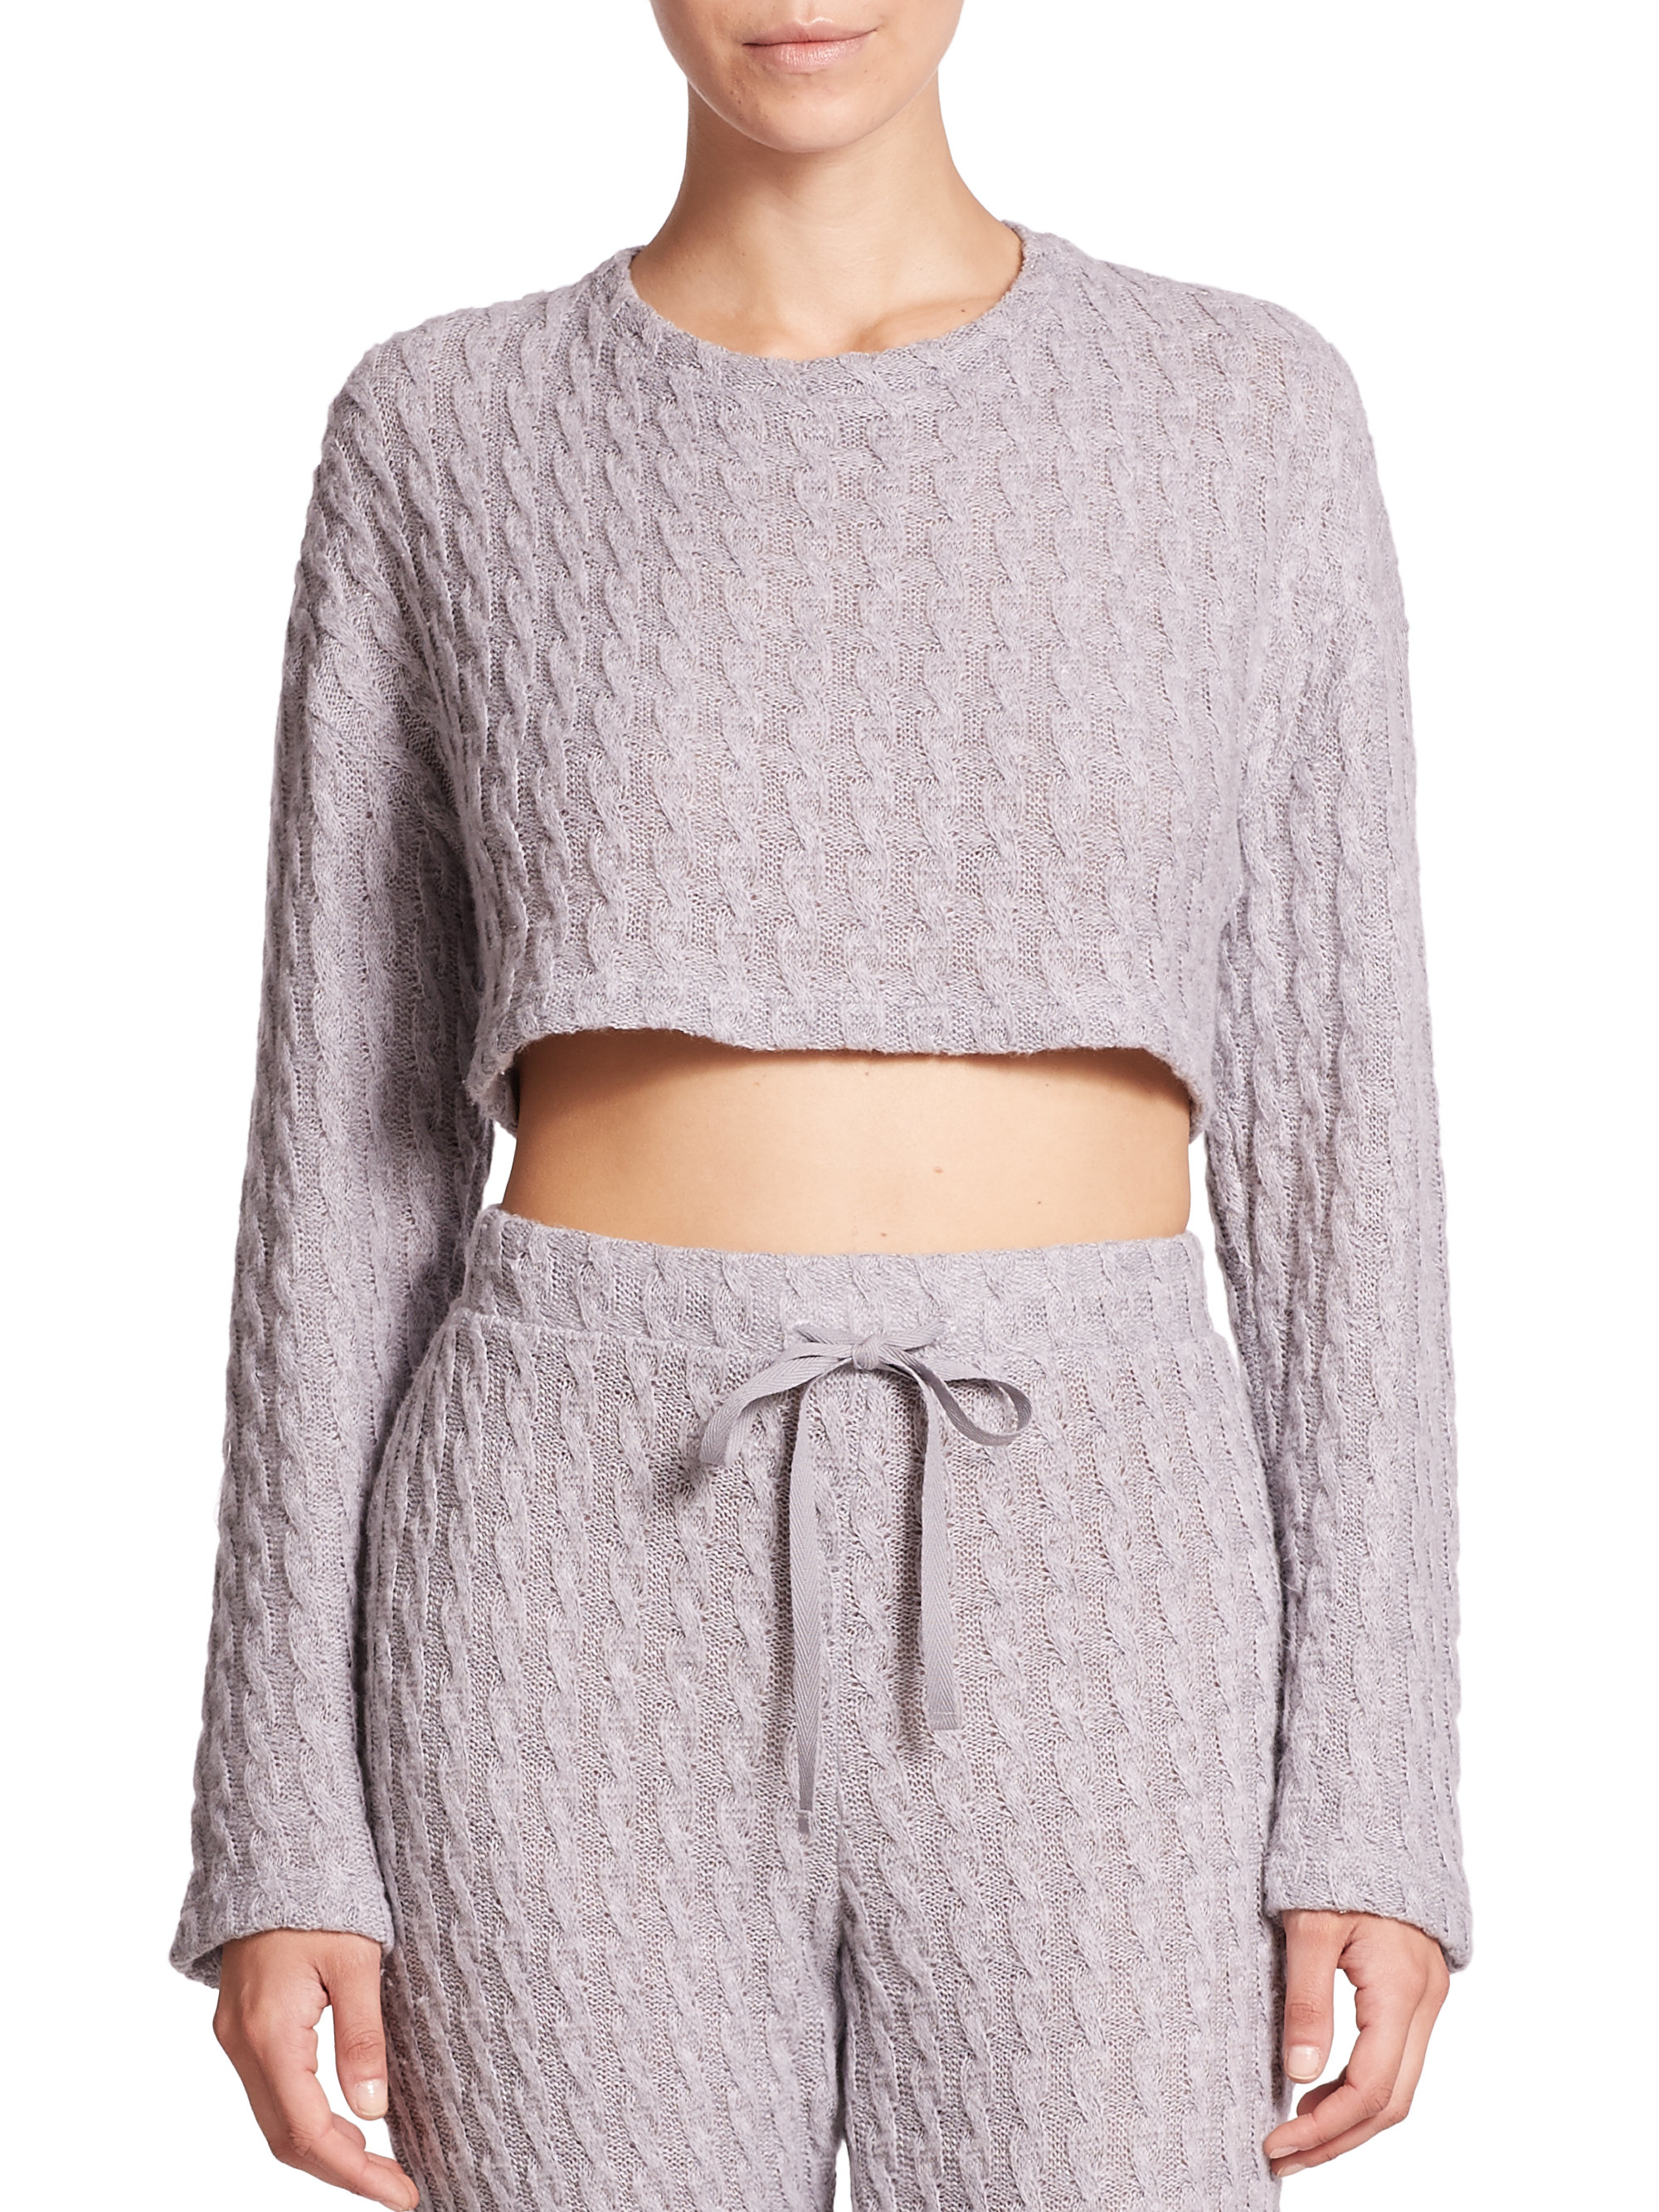 Csbla Jasmin Cropped Cable-knit Sweater in Gray | Lyst